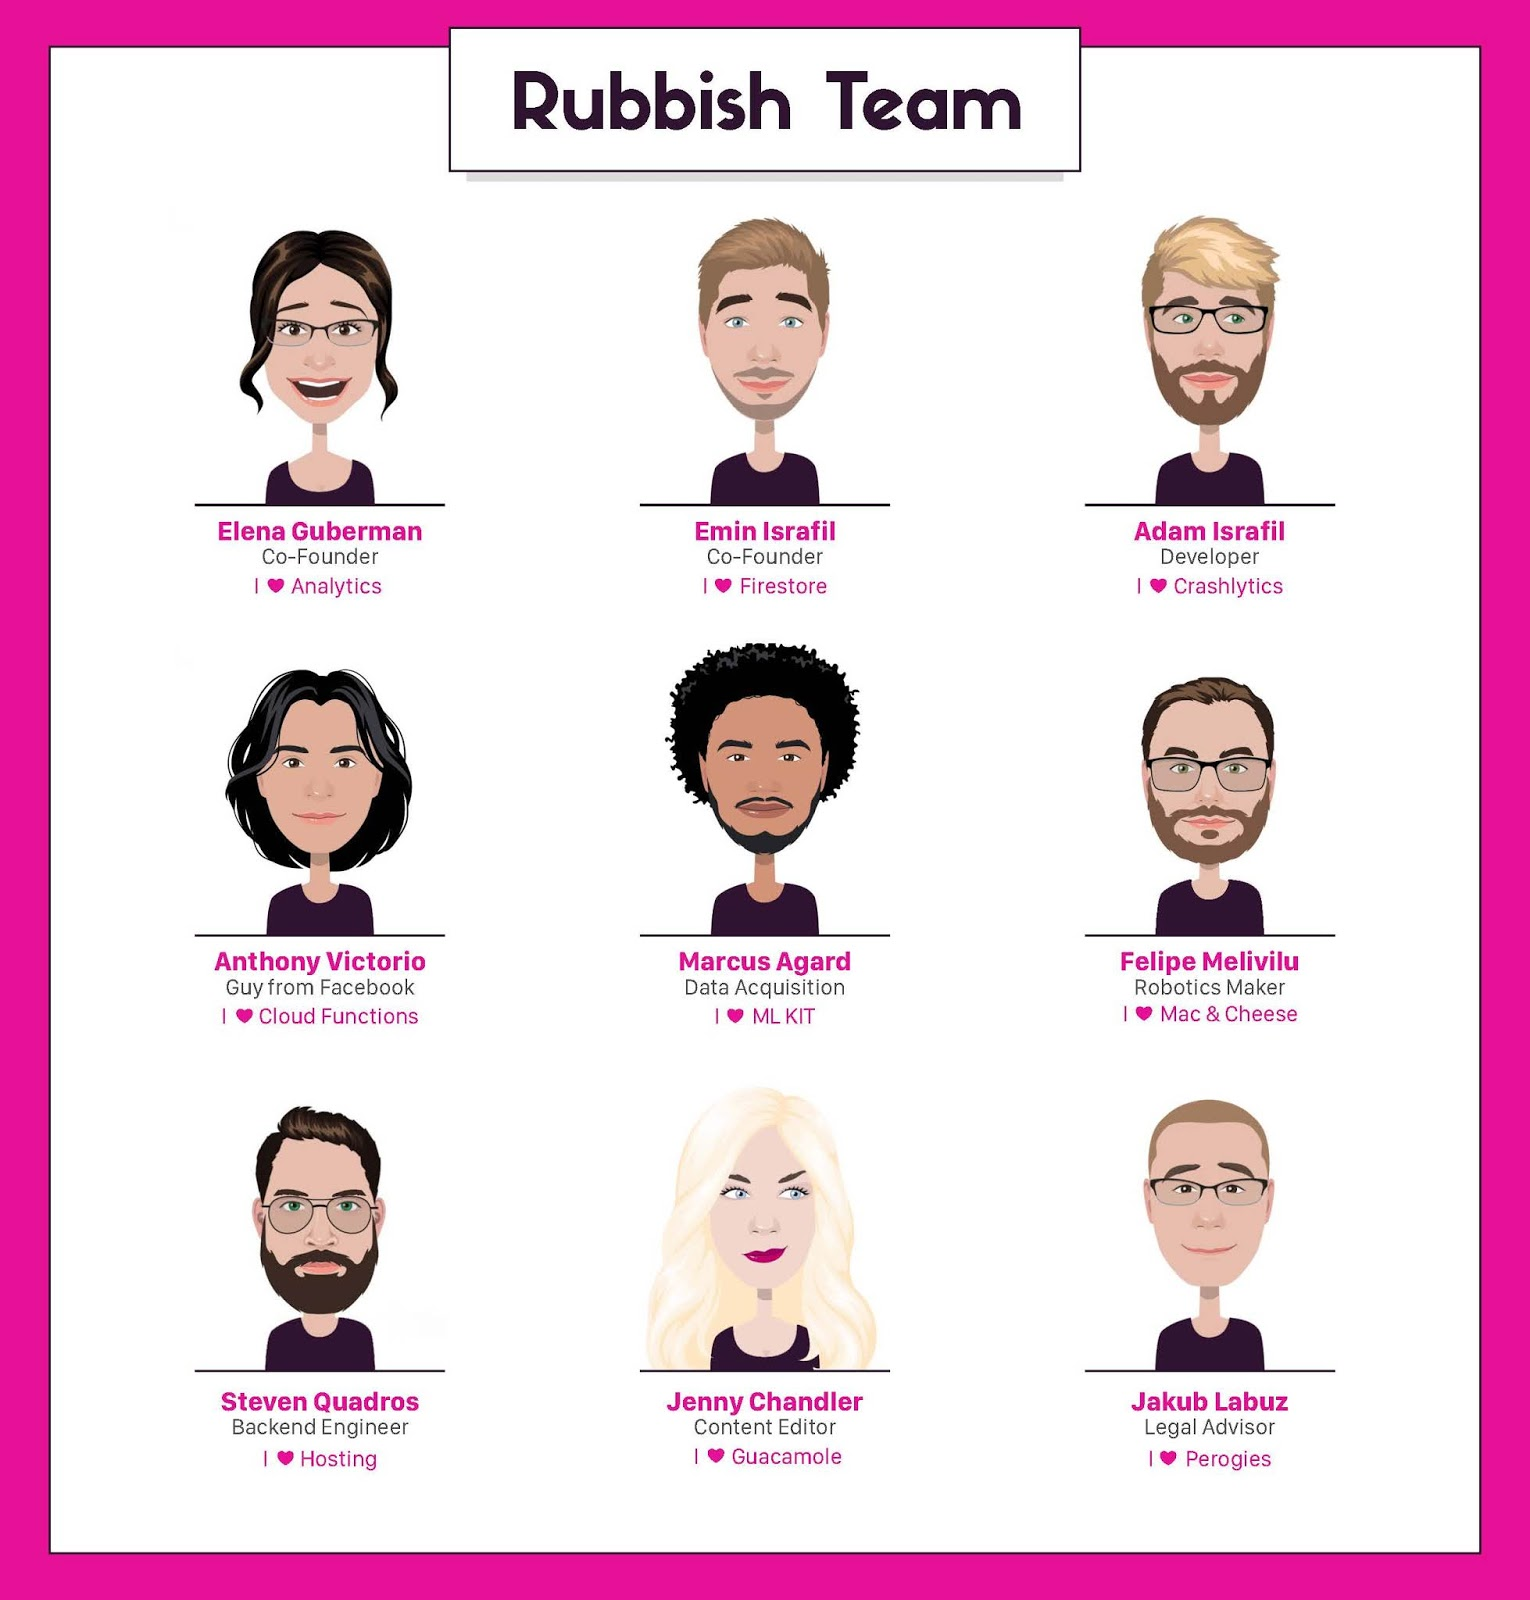 A 3x3 grid showing the members of the Rubbish team